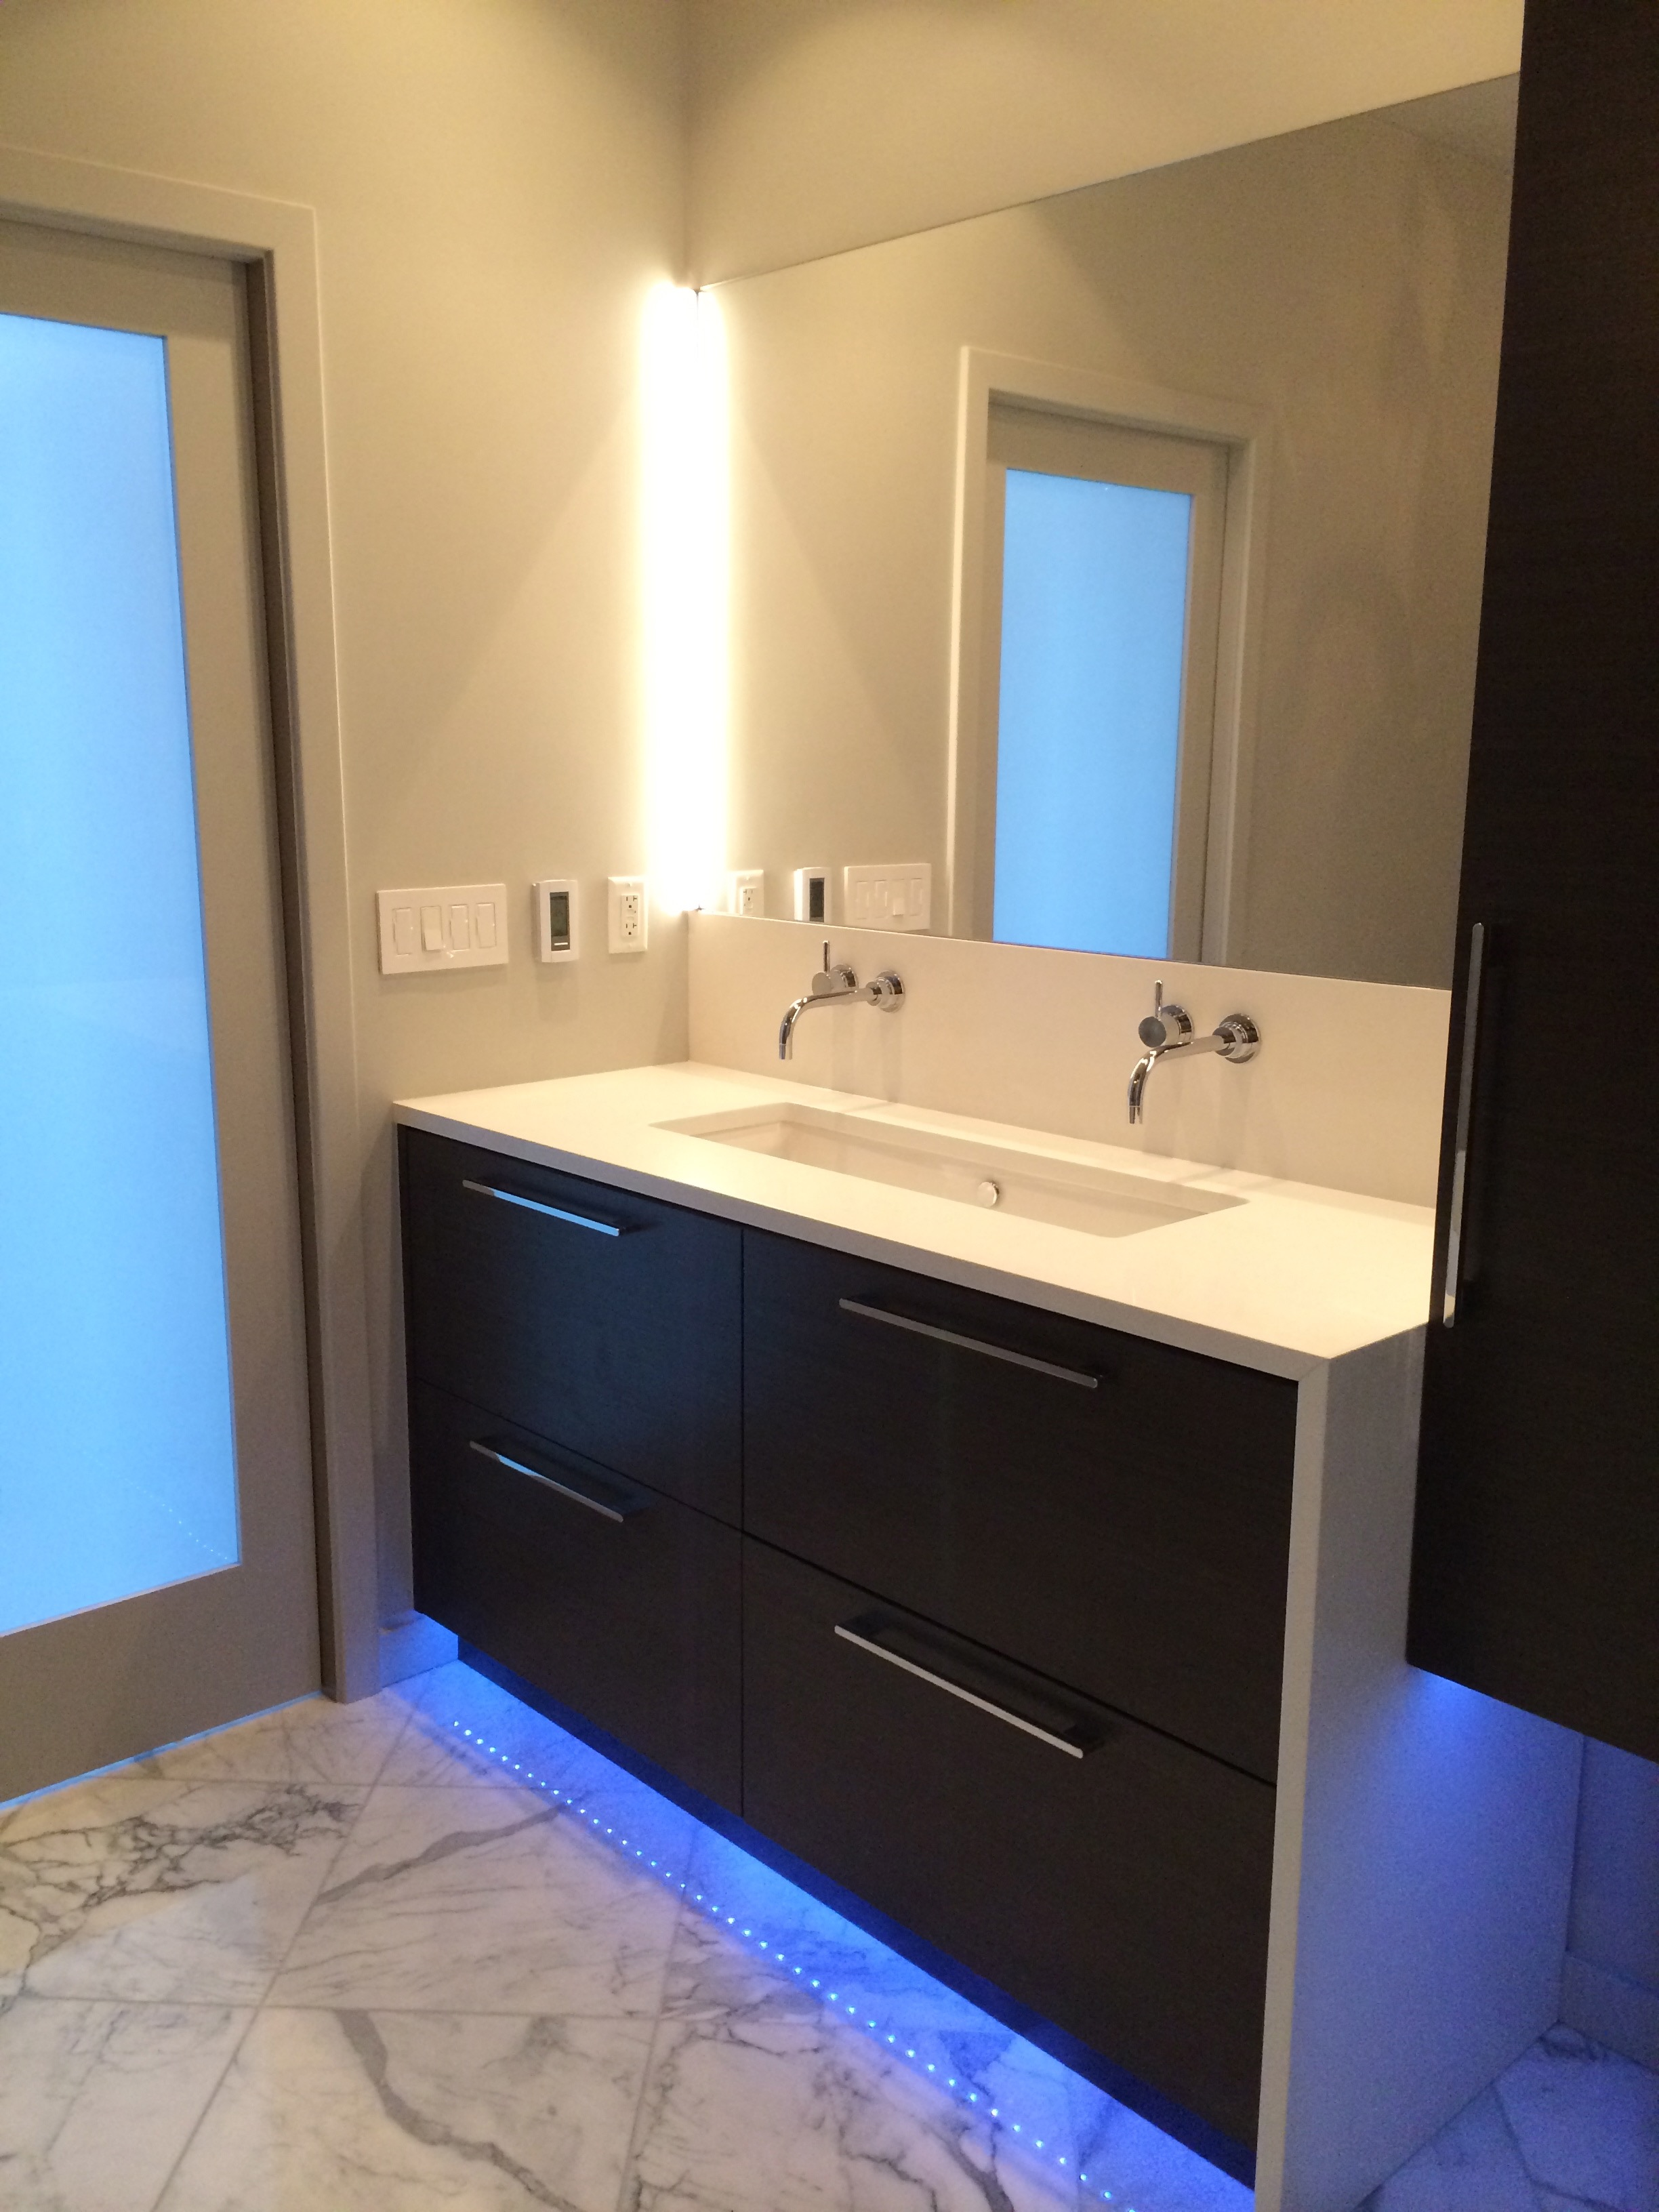 Led Under Cabinet Lighting For Contemporary Bathroom (Image 8 of 19)